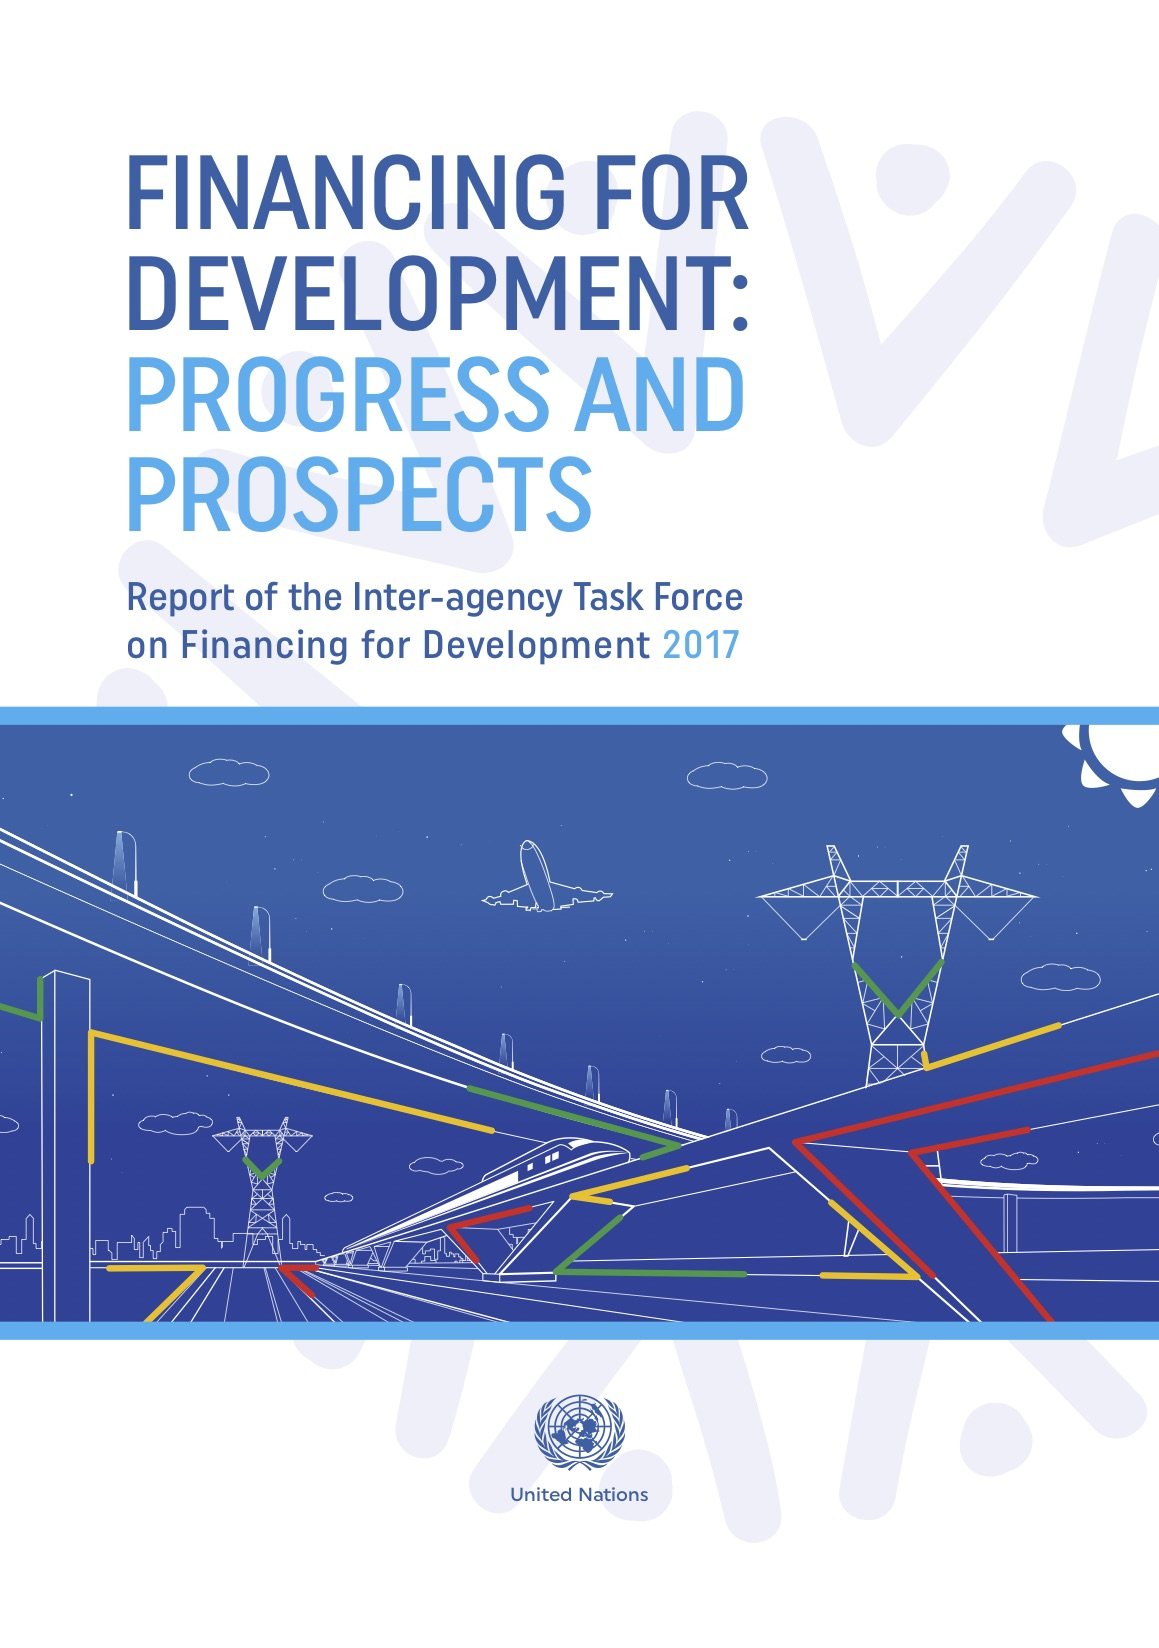 Financing for Development: Progress and Prospects